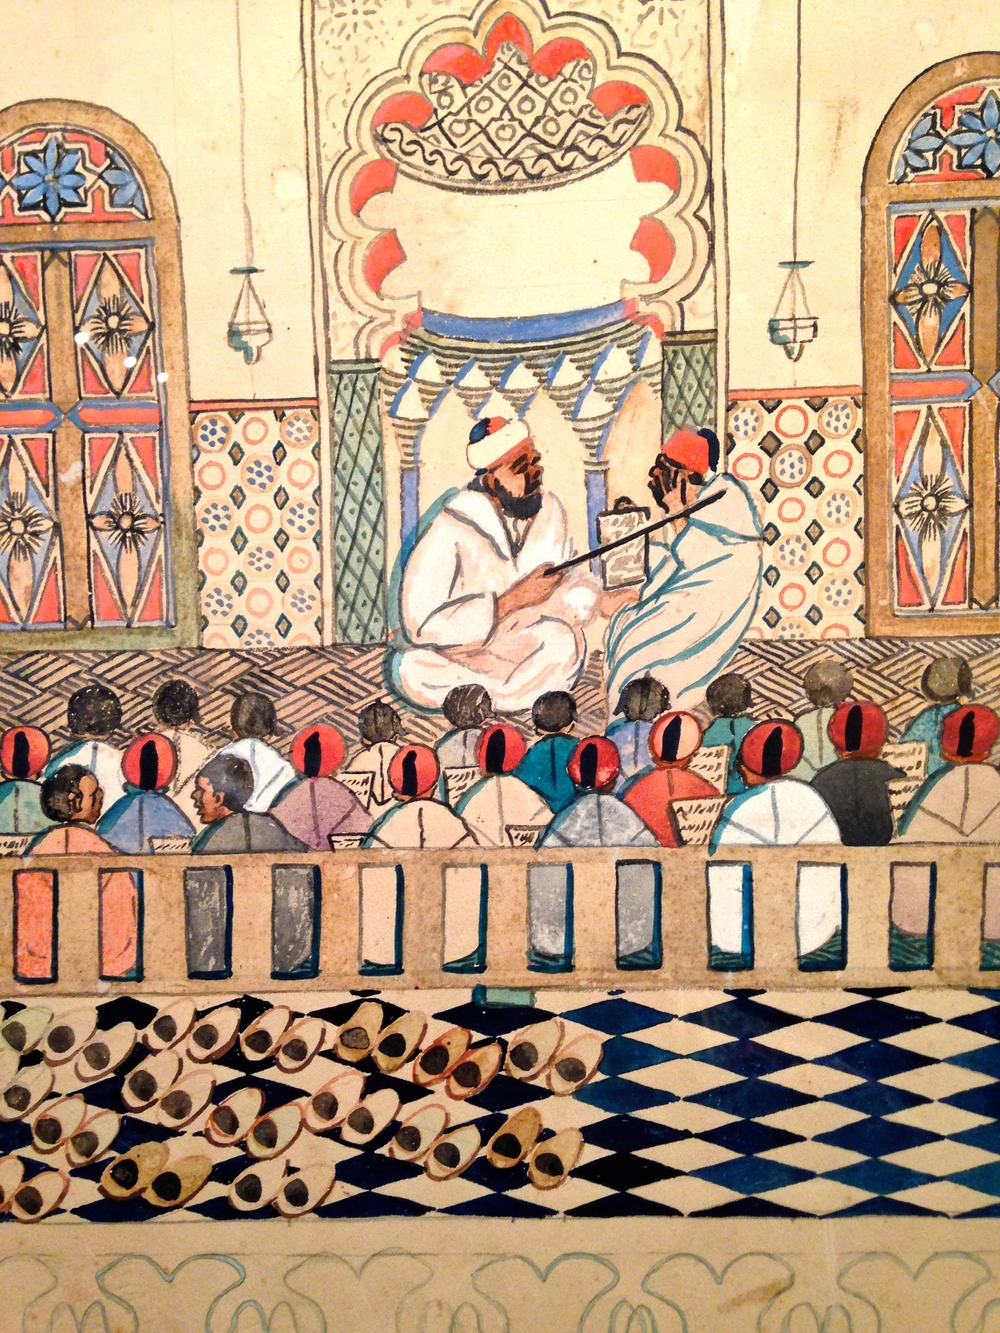 A detail from a work by the early modern  Moroccan painter Ben Ali Rbati (held at the Musée de la Fondation Slaoui in Casablanca), one of the earliest artists to use perspective and to depict more casual and domestic scenes. This is of a Coranic school.